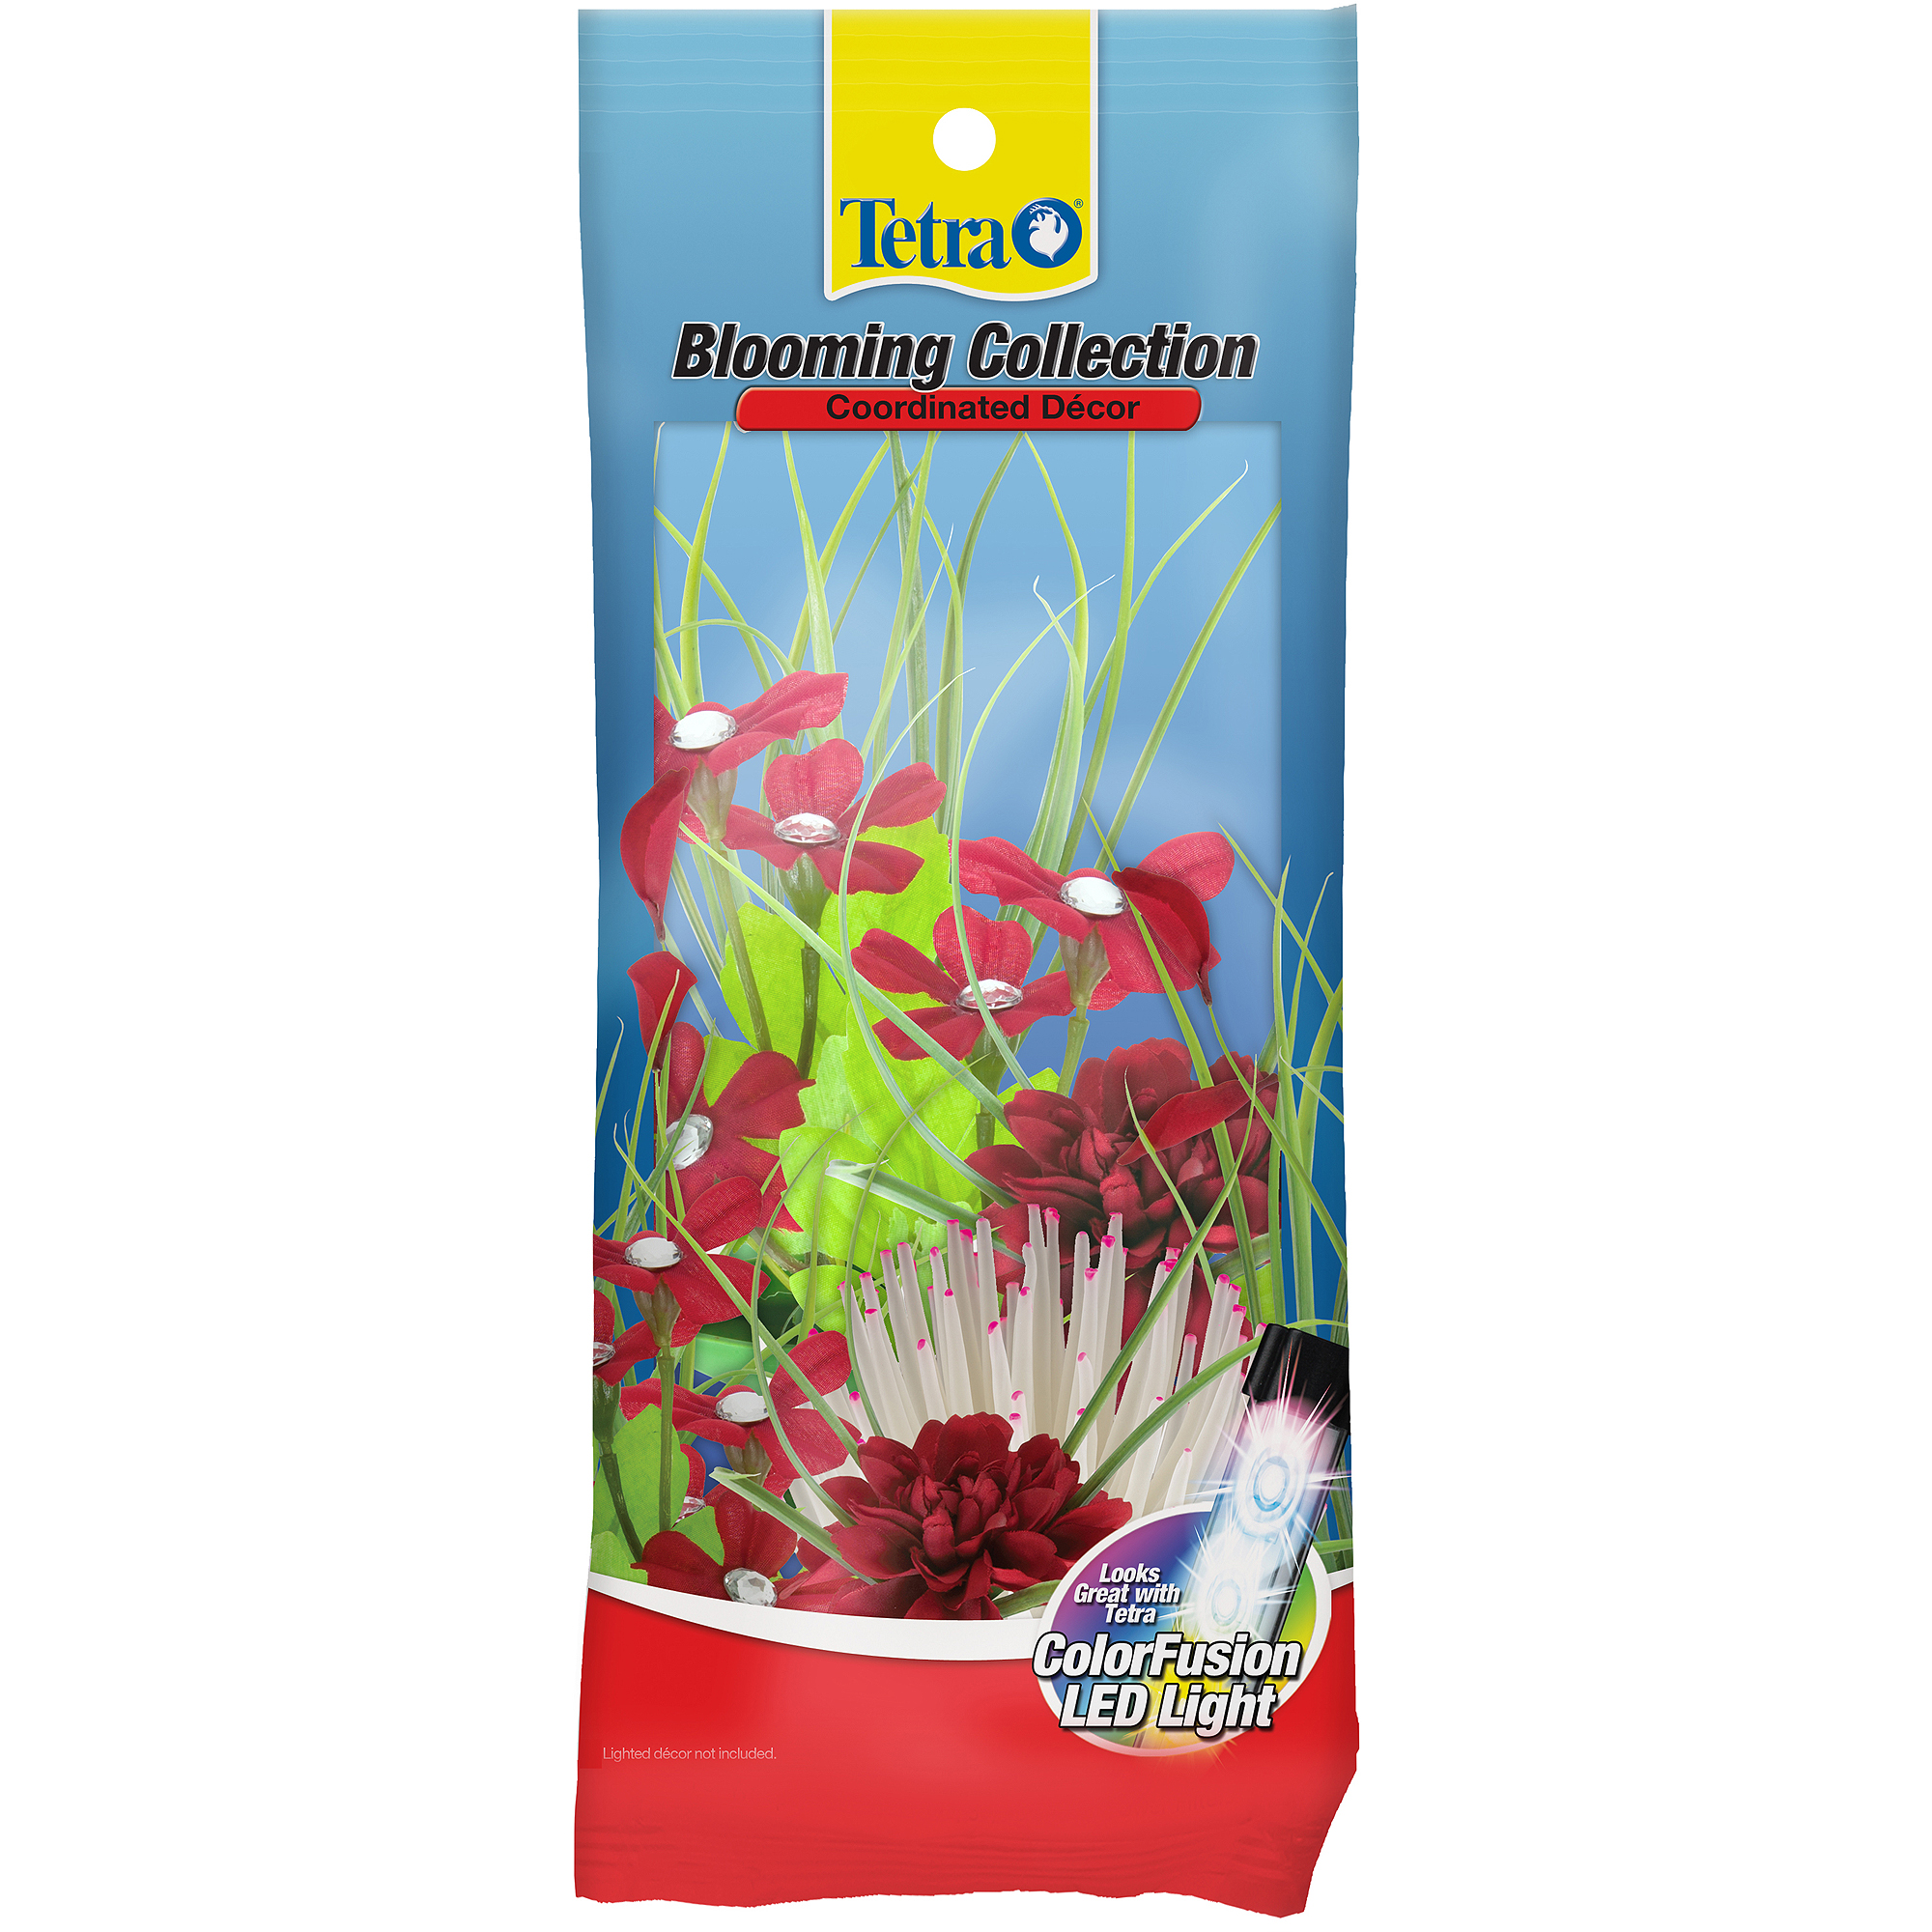 Tetra Blooming Collection Plant, 4-Pack